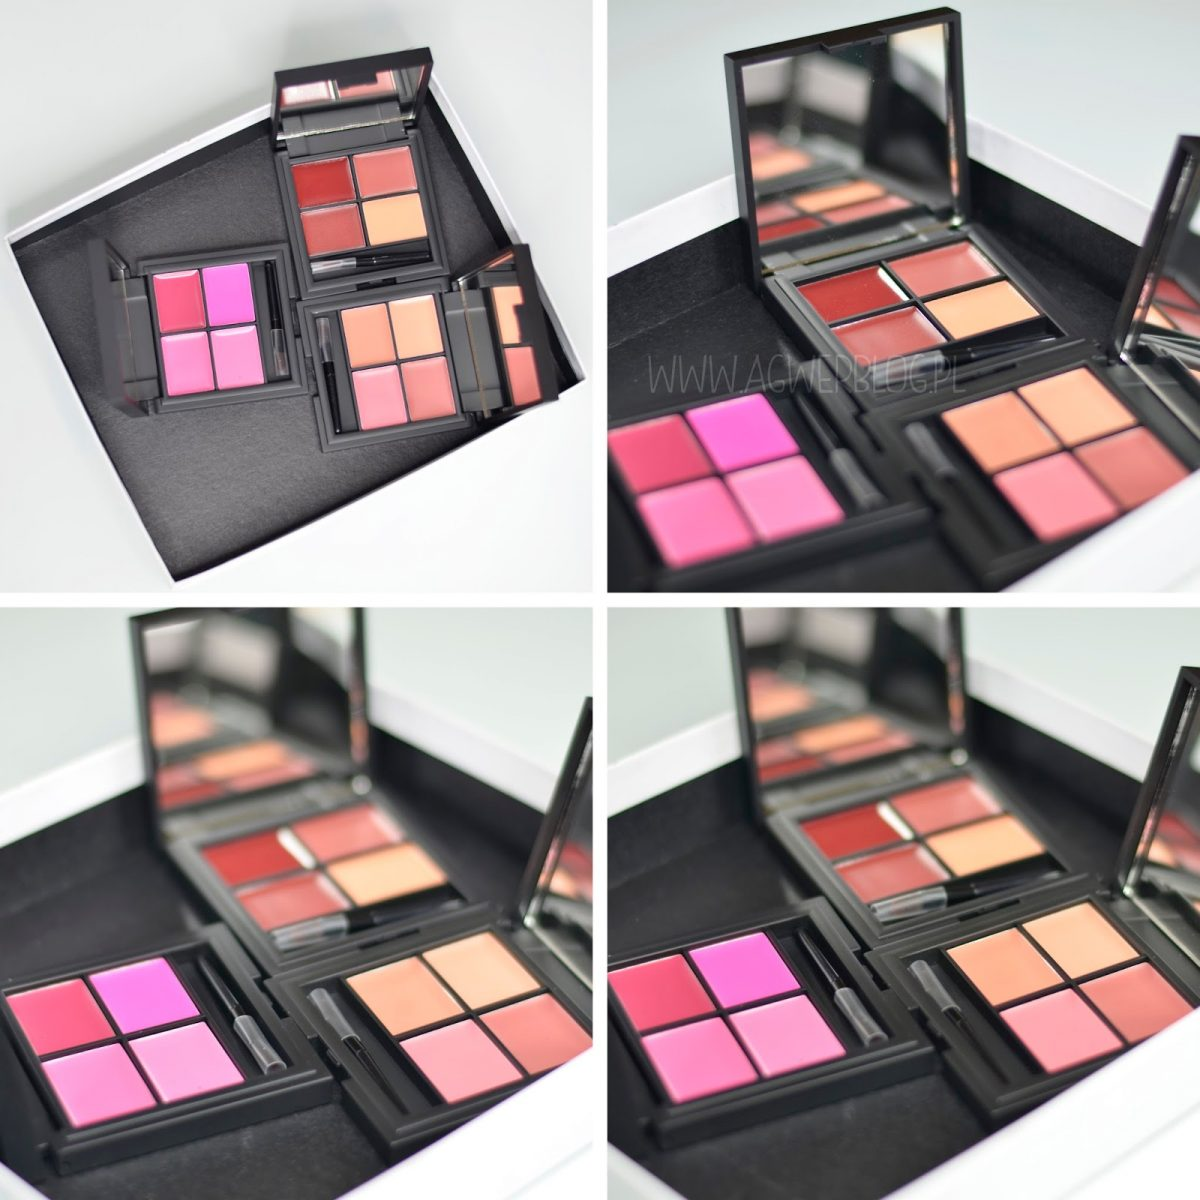 Sleek lip 4 lipstick palette